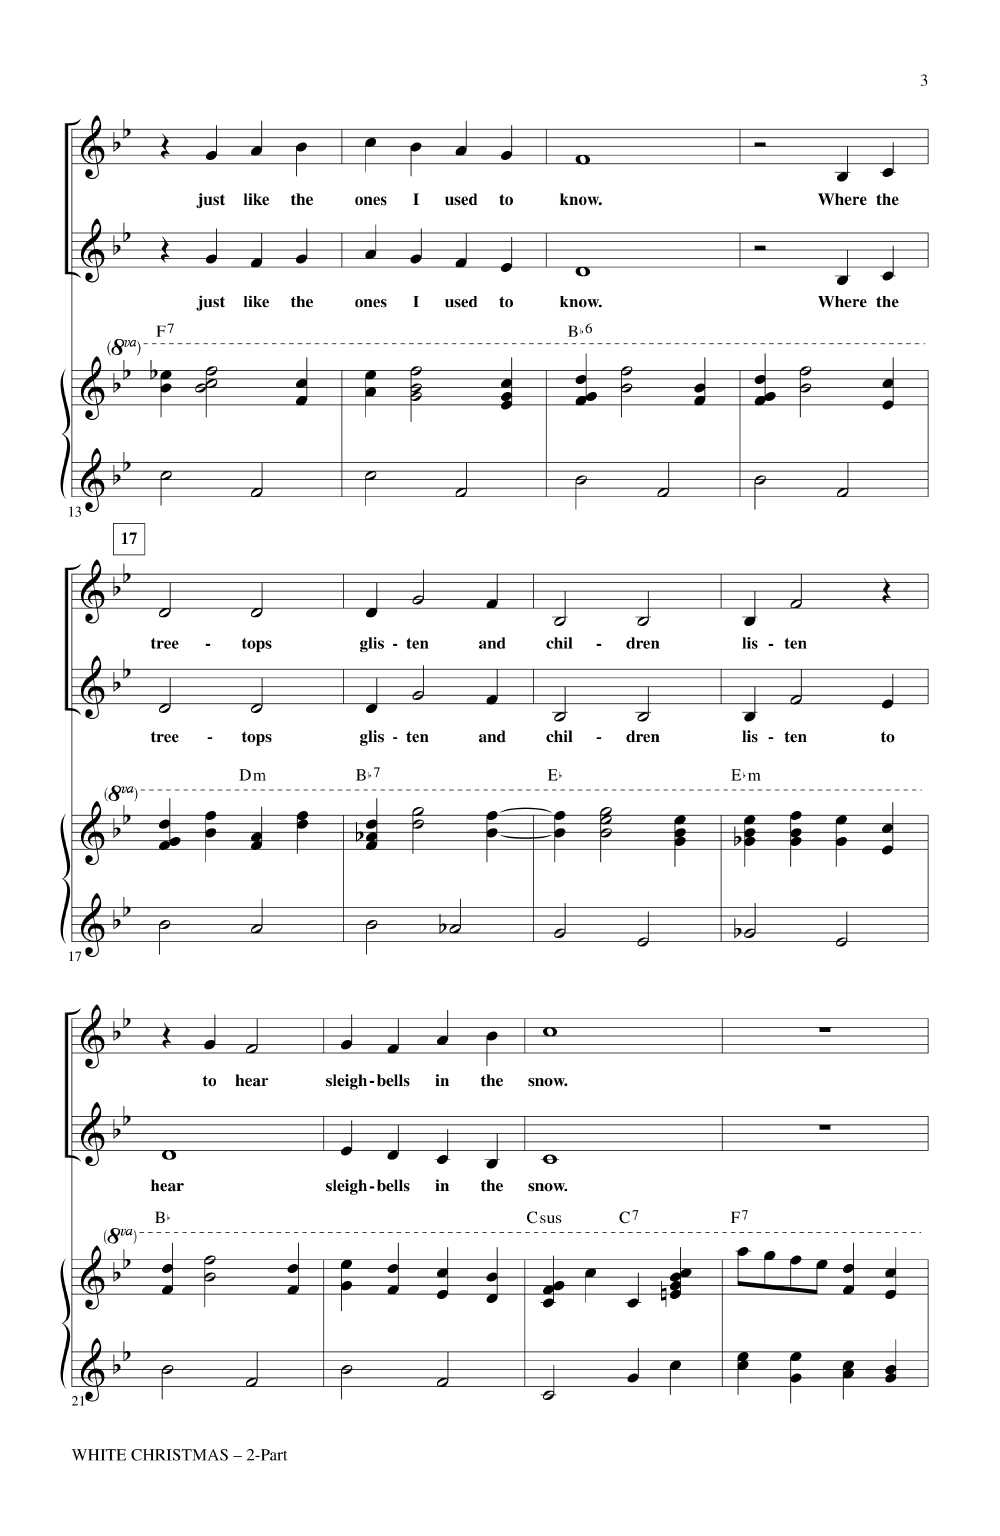 White Christmas (Two-Part ) by Irving Berlin | J.W. Pepper Sheet Music